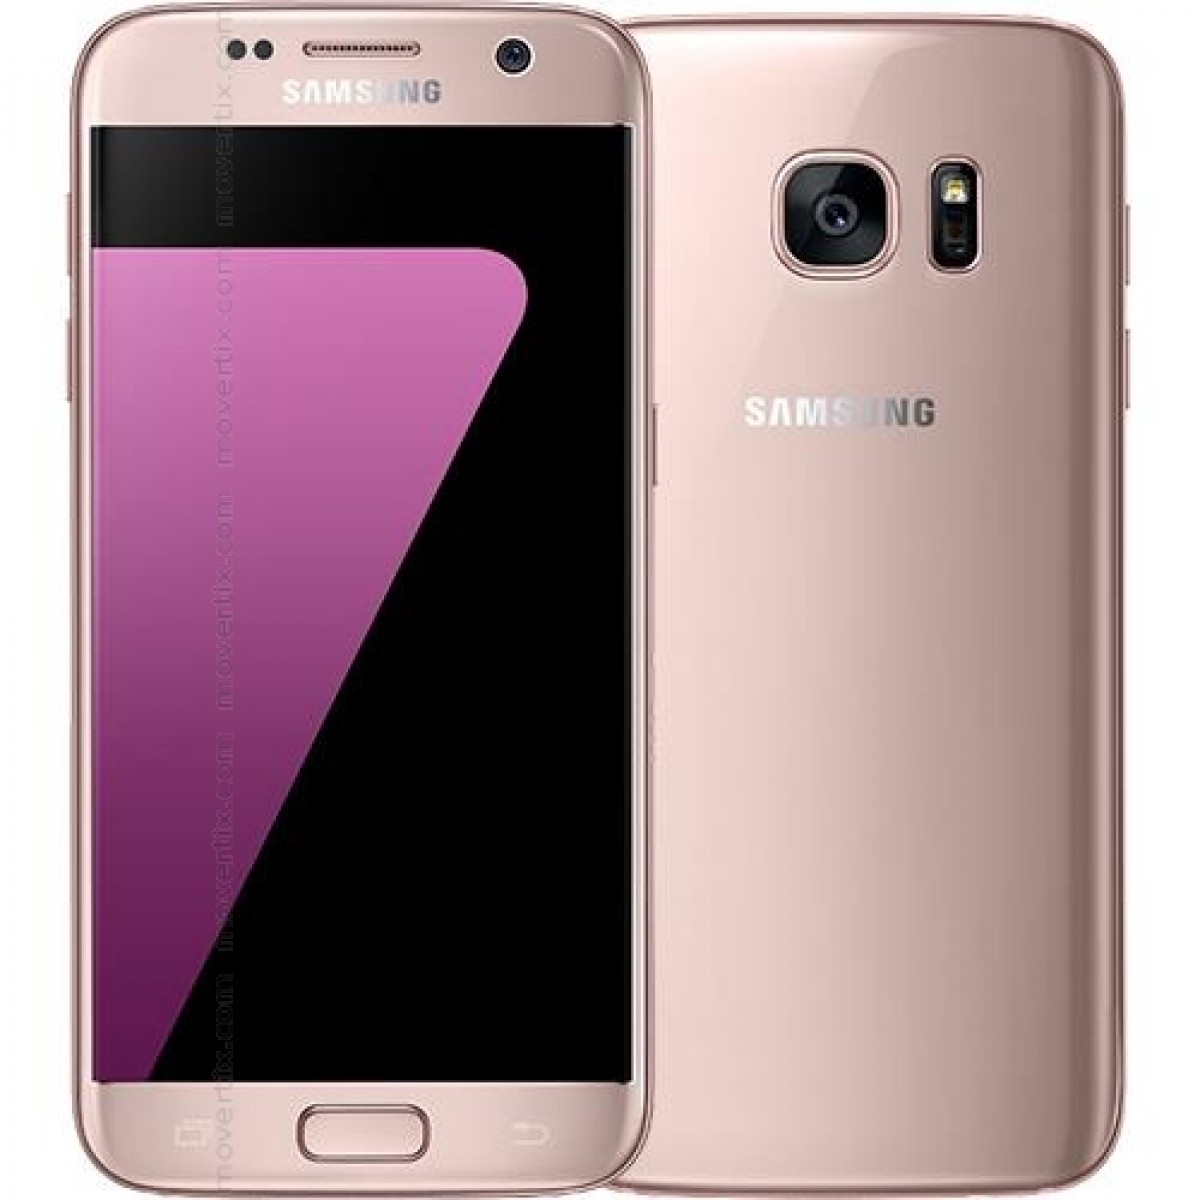 Moviles Libres Blackberry Samsung Galaxy S7 En Rosa Dorado De 32gb G930f